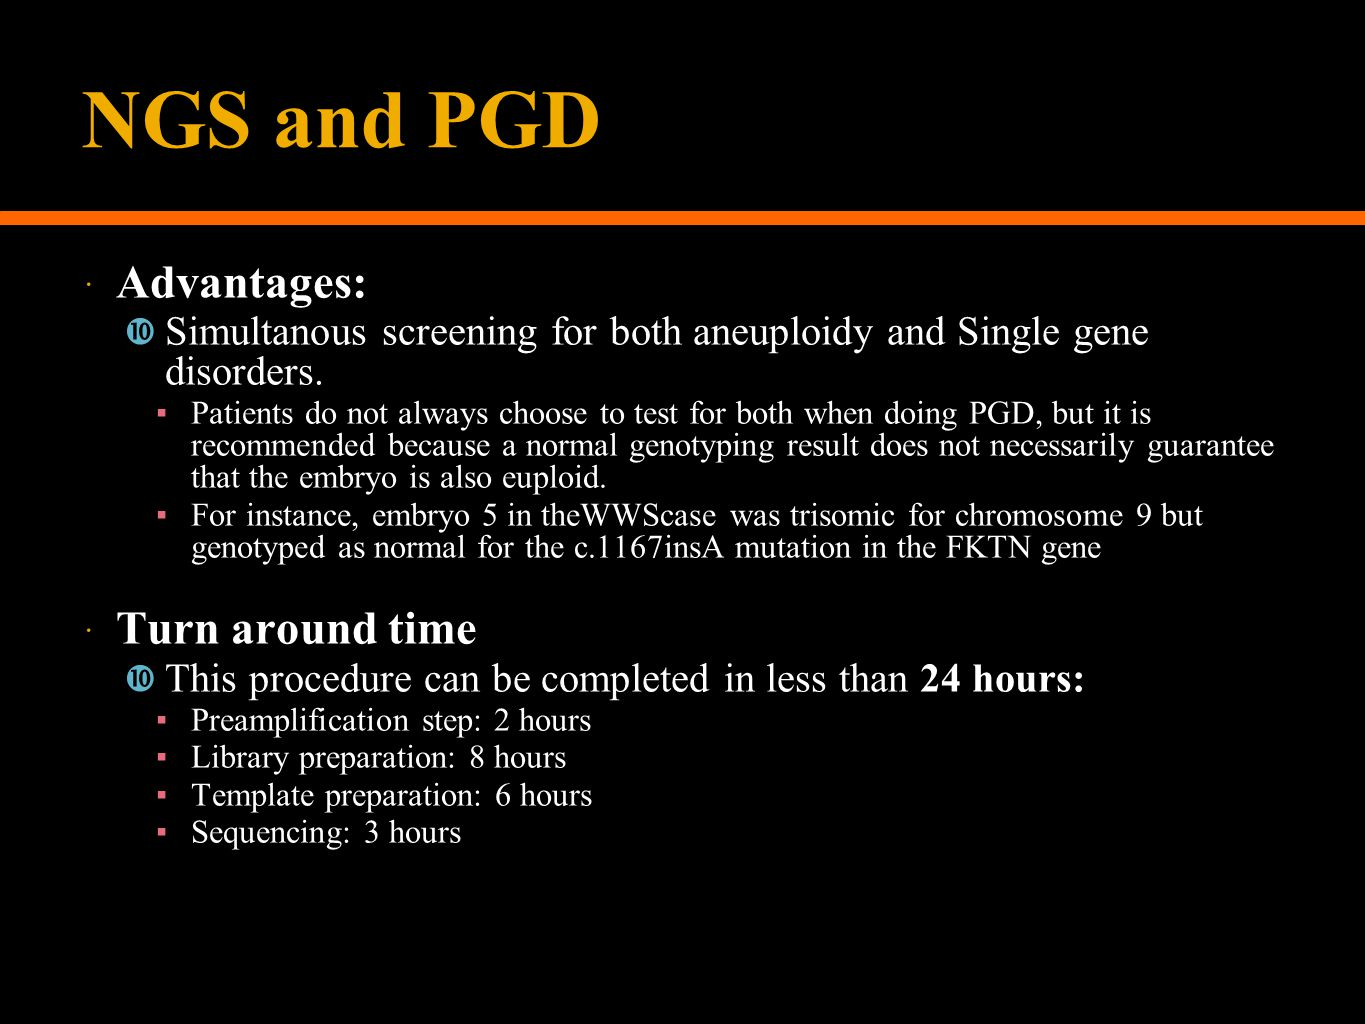 NGS and PGD Advantages: Turn around time